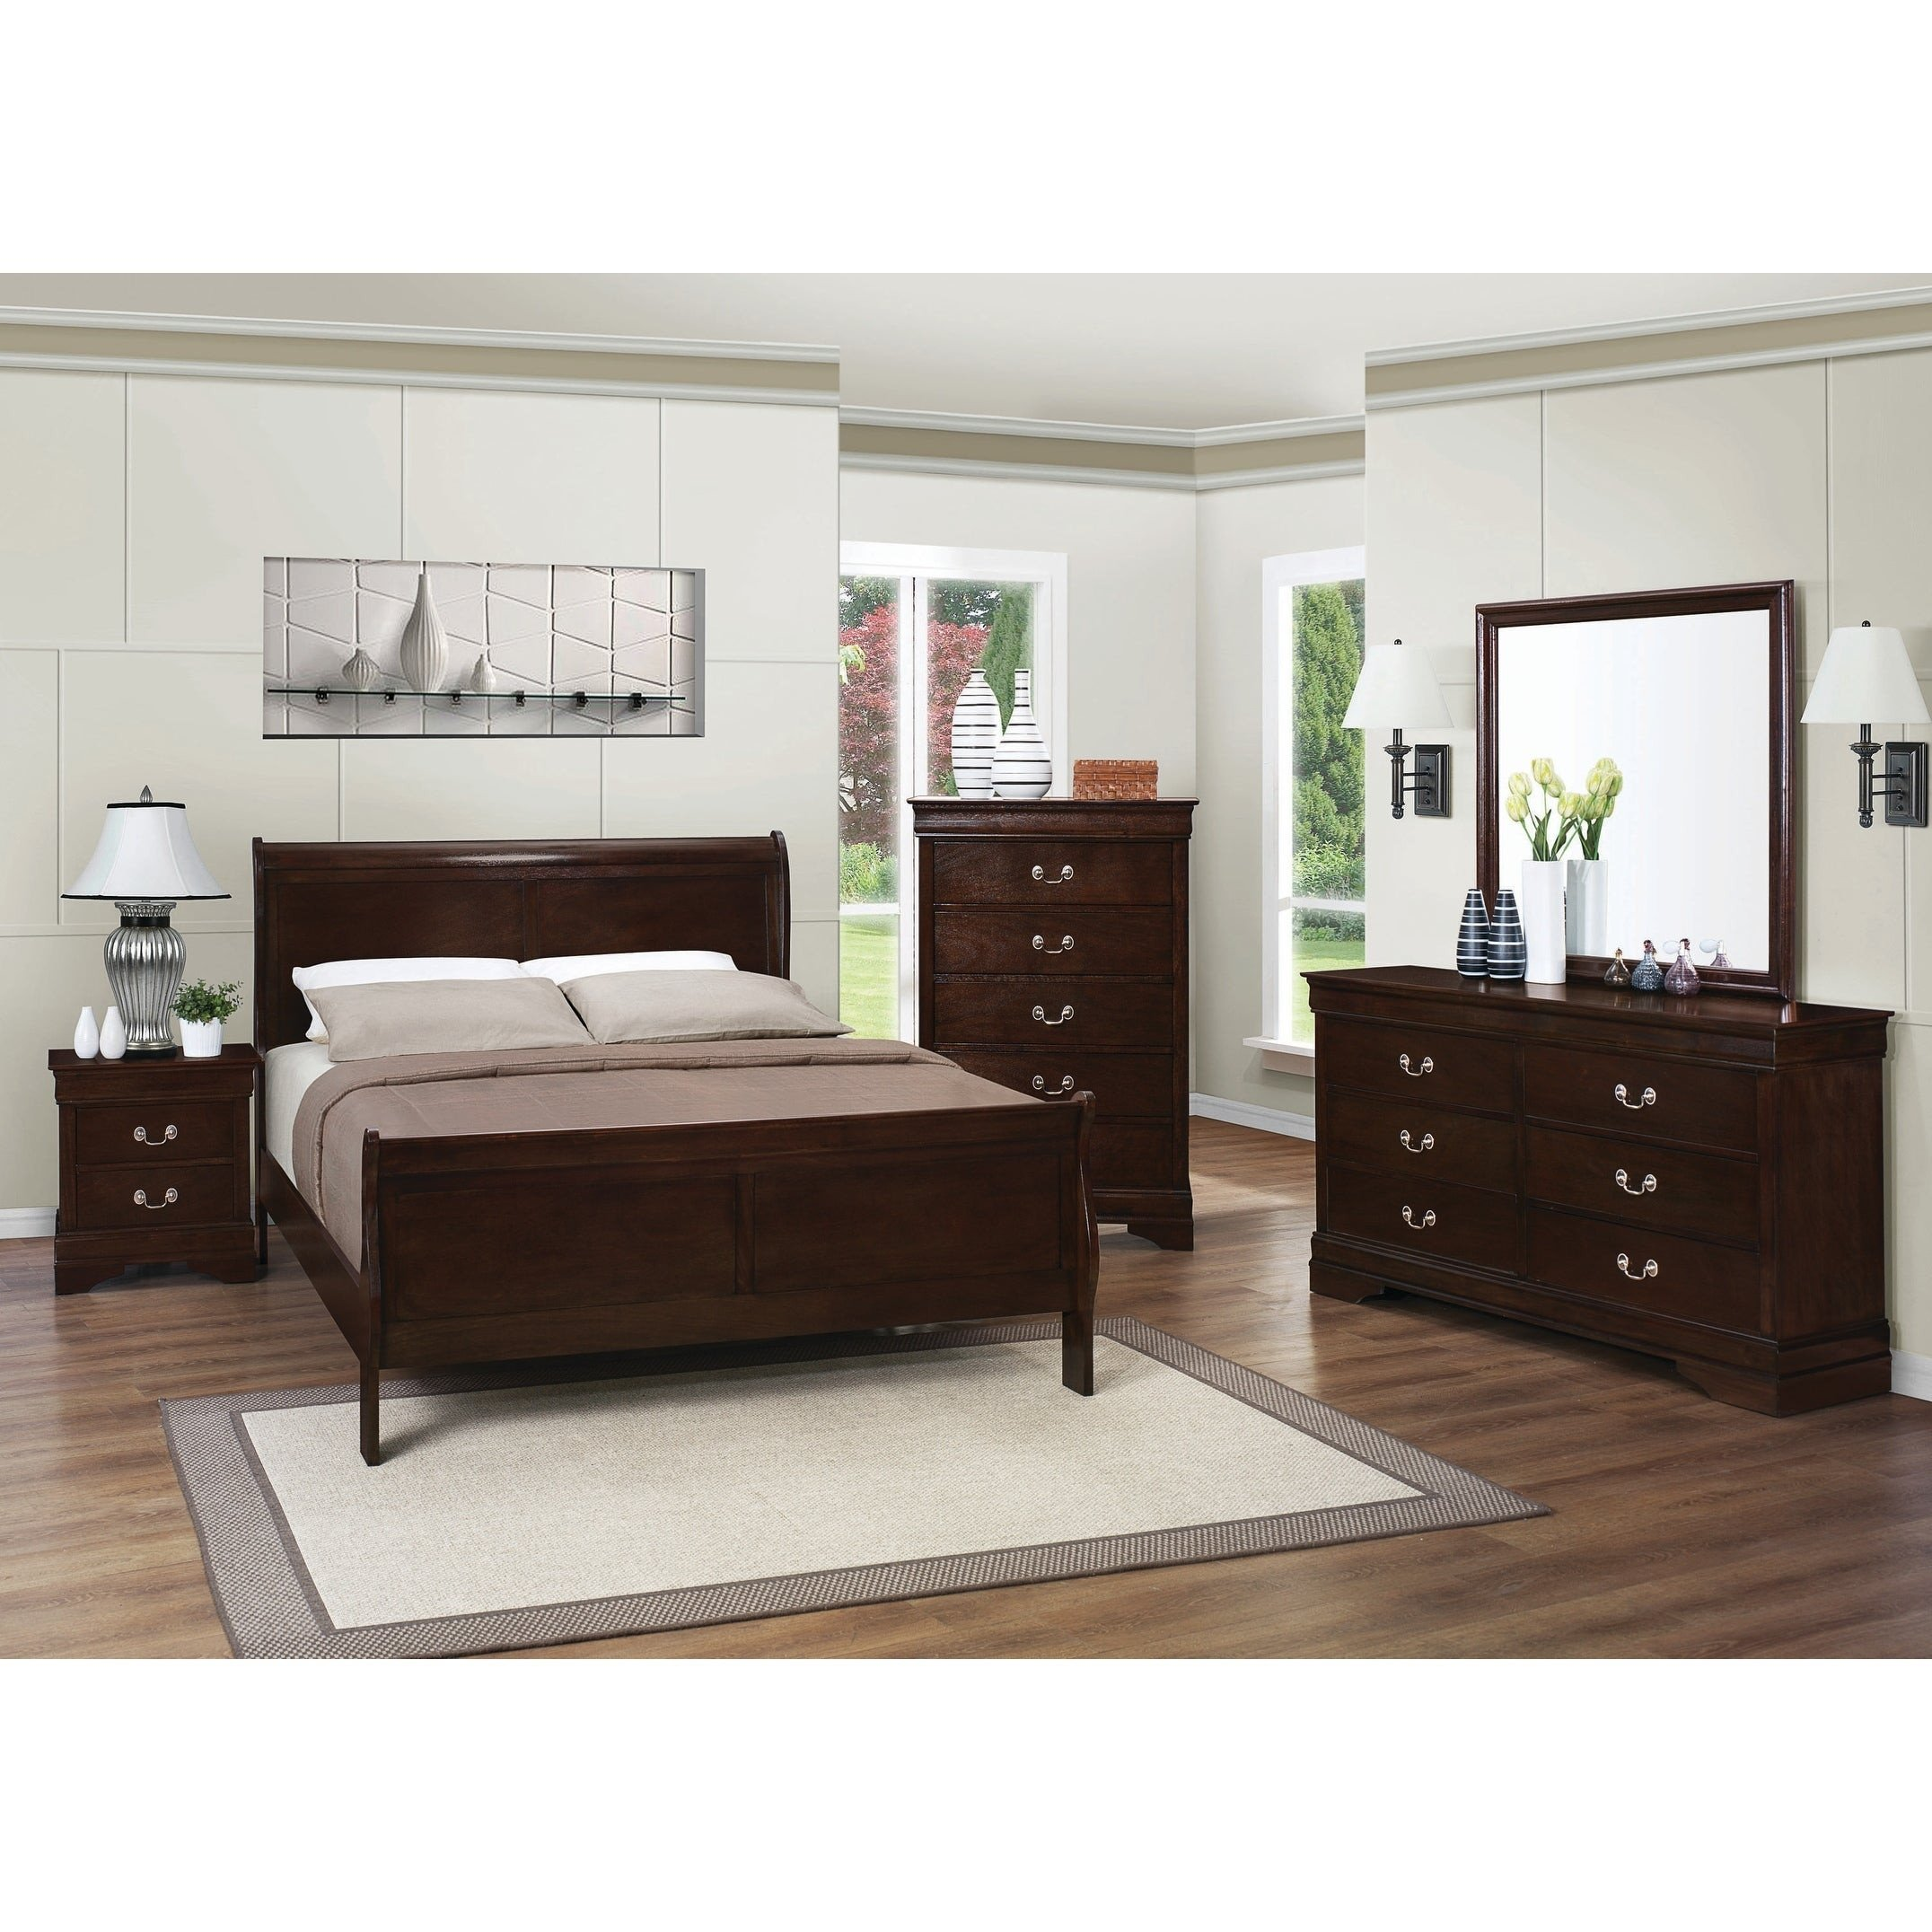 7 Piece Bedroom Set King Fresh Louis Philippe Warm Brown 4 Piece Bedroom Set